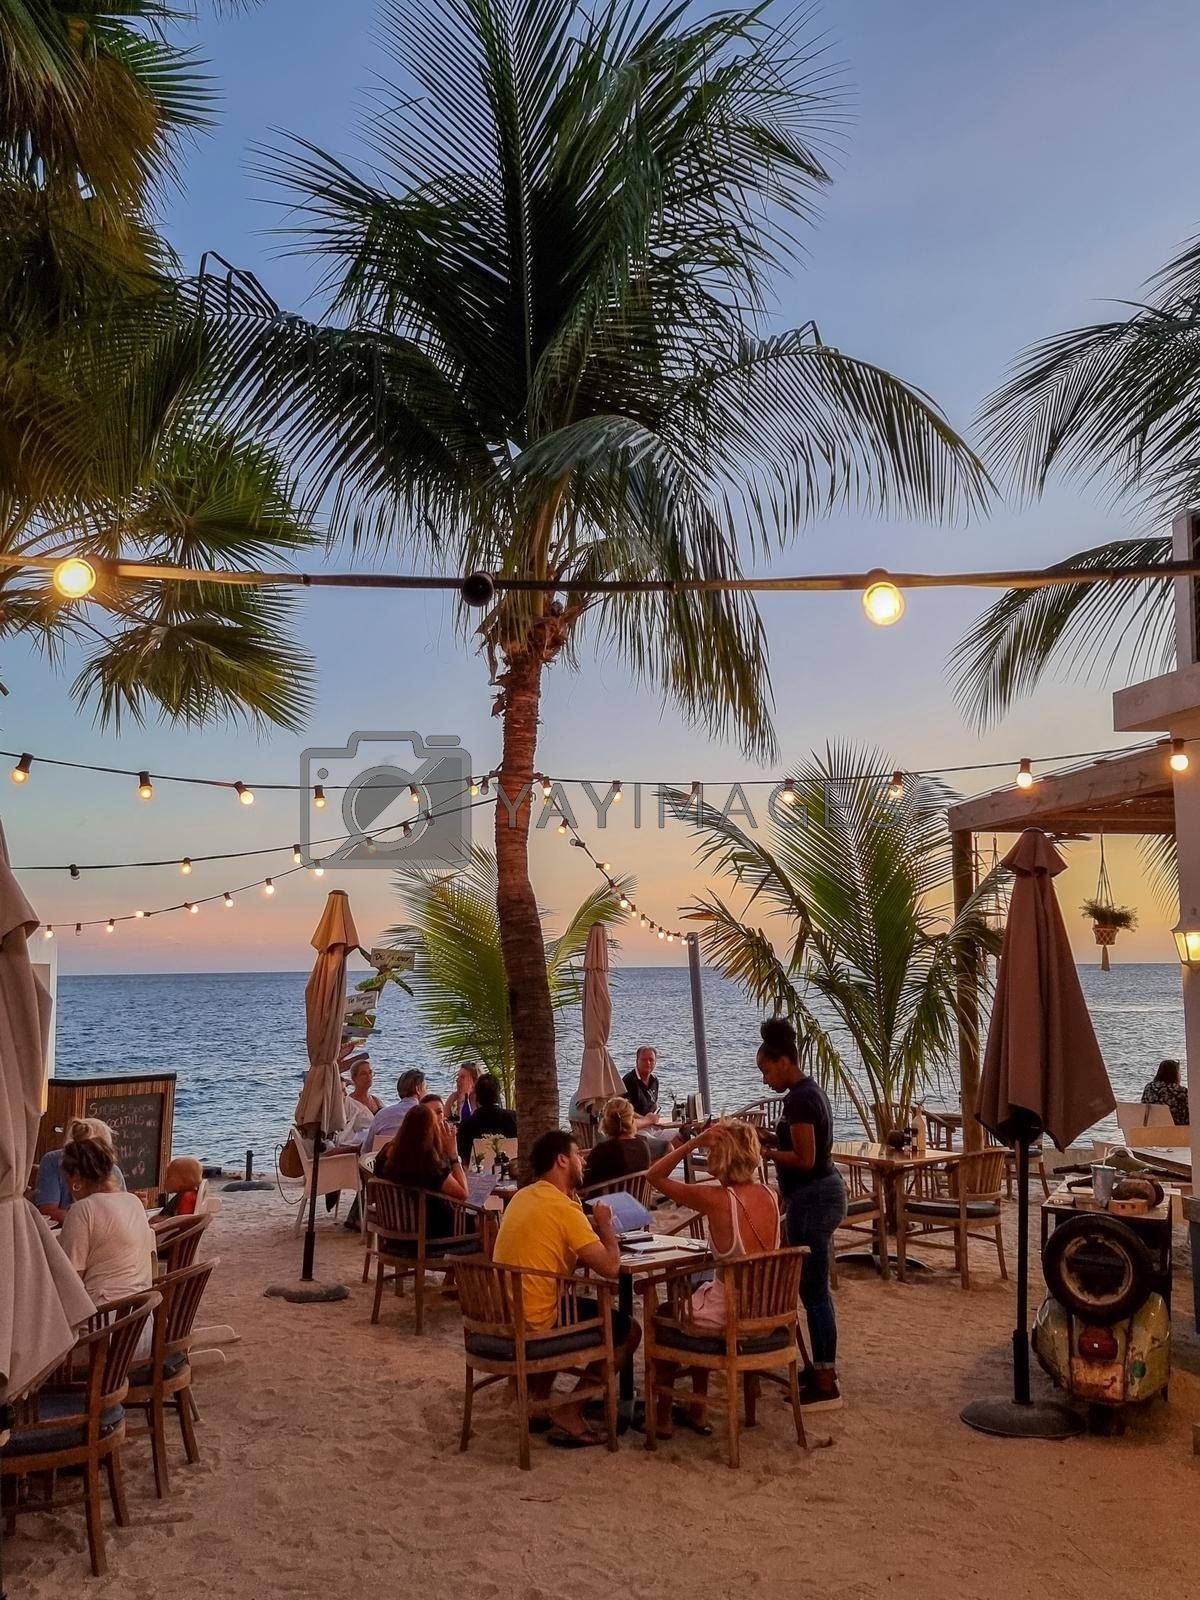 Curacao, Netherlands Antilles March 2021,People dining on the beach Curacao Caribbean Island, Colorful restored colonial buildings in Pietermaai